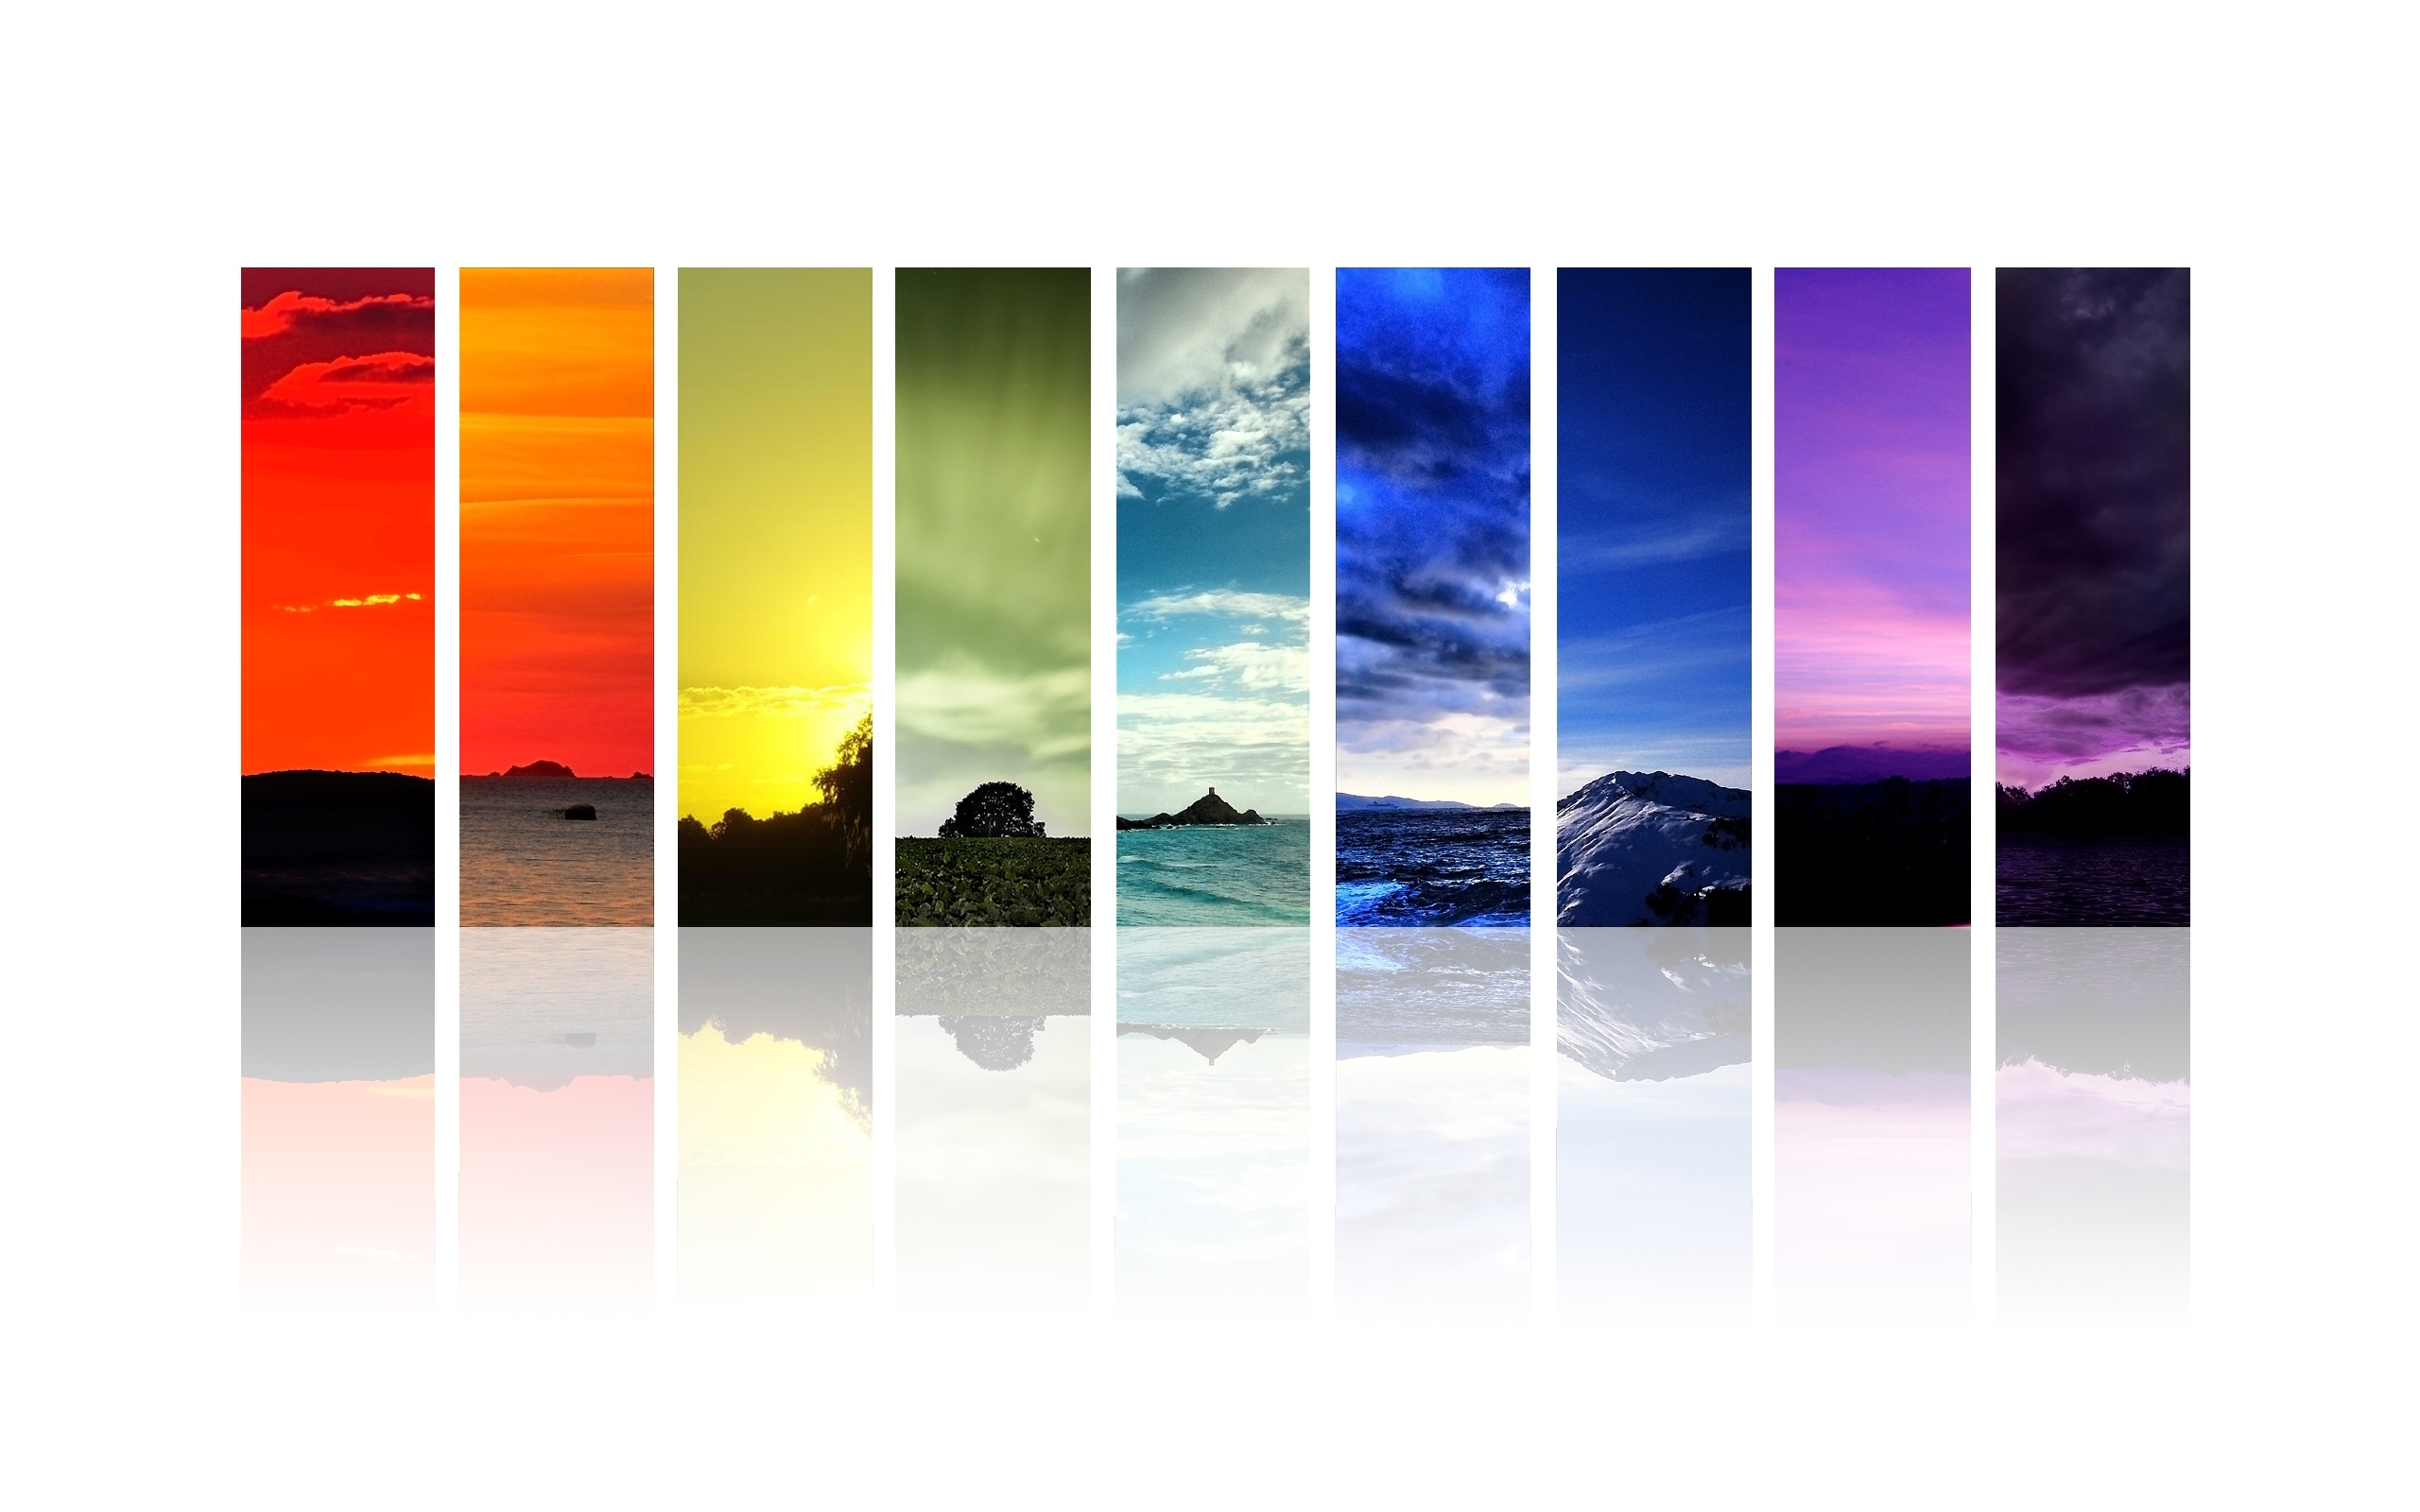 Multi Color Bar Code Scenic Youtube Channel Cover